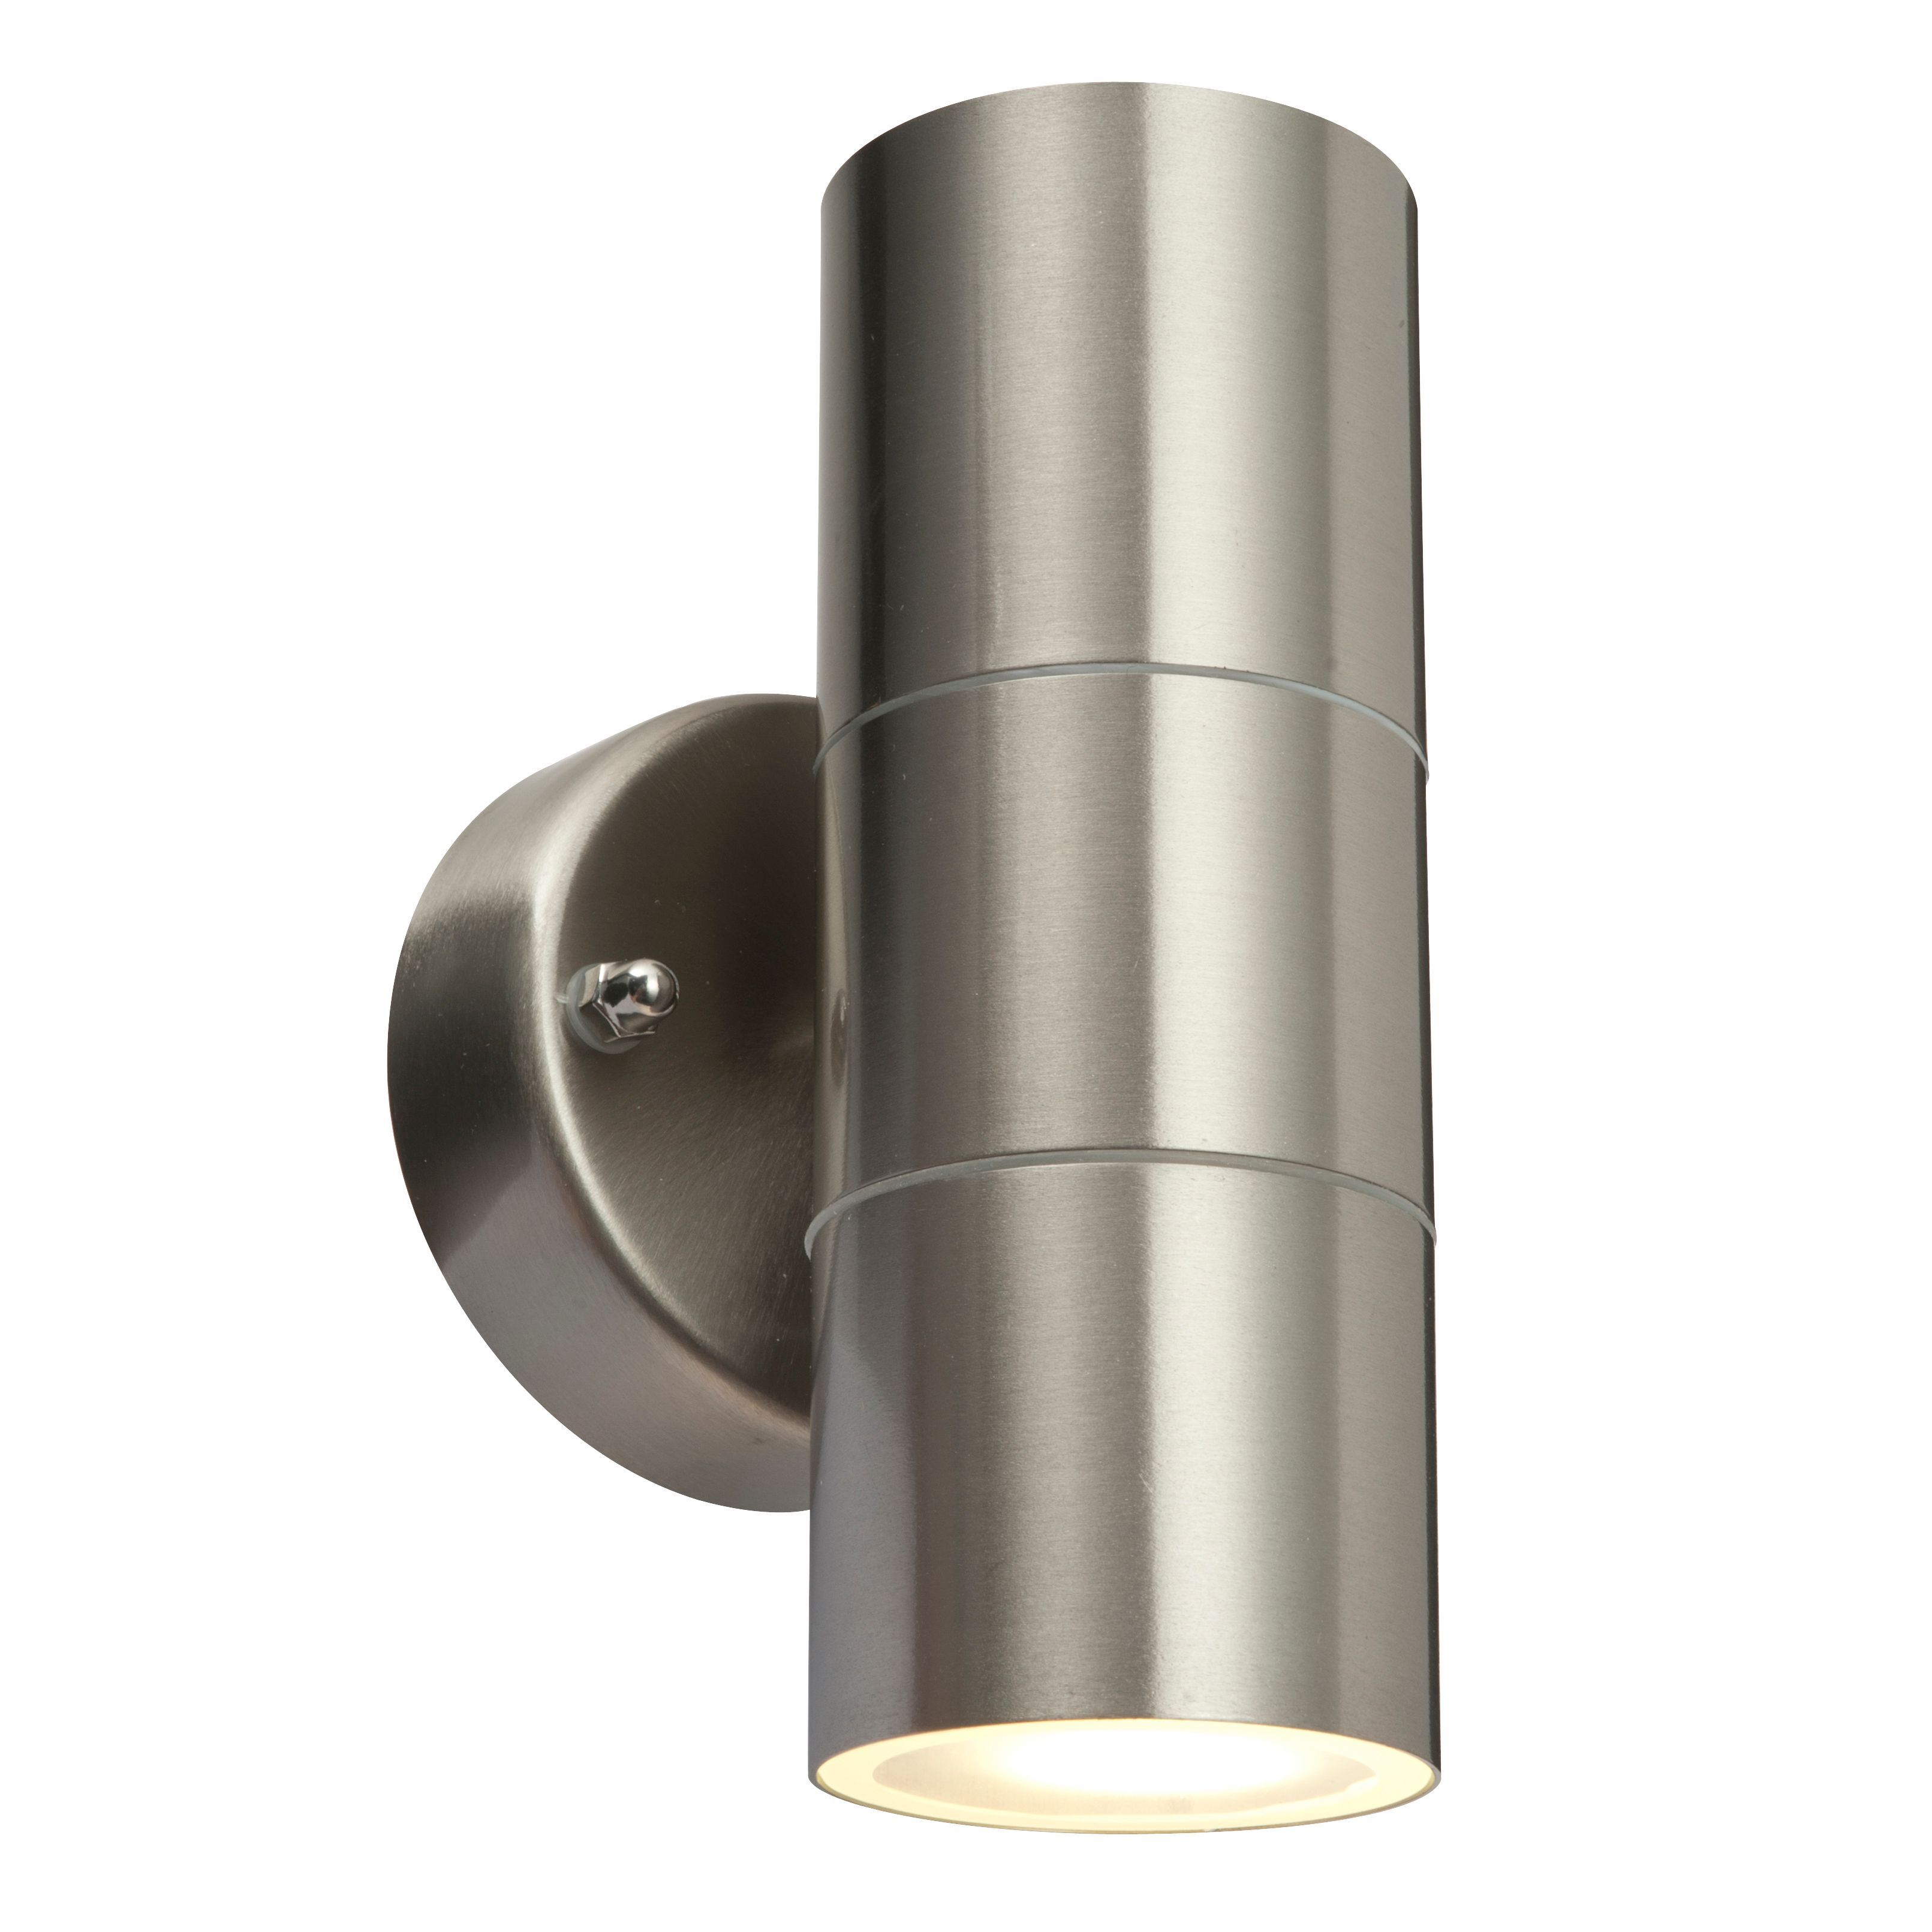 Blooma sommus stainless steel mains powered external up down blooma sommus stainless steel mains powered external up down wall light aloadofball Choice Image